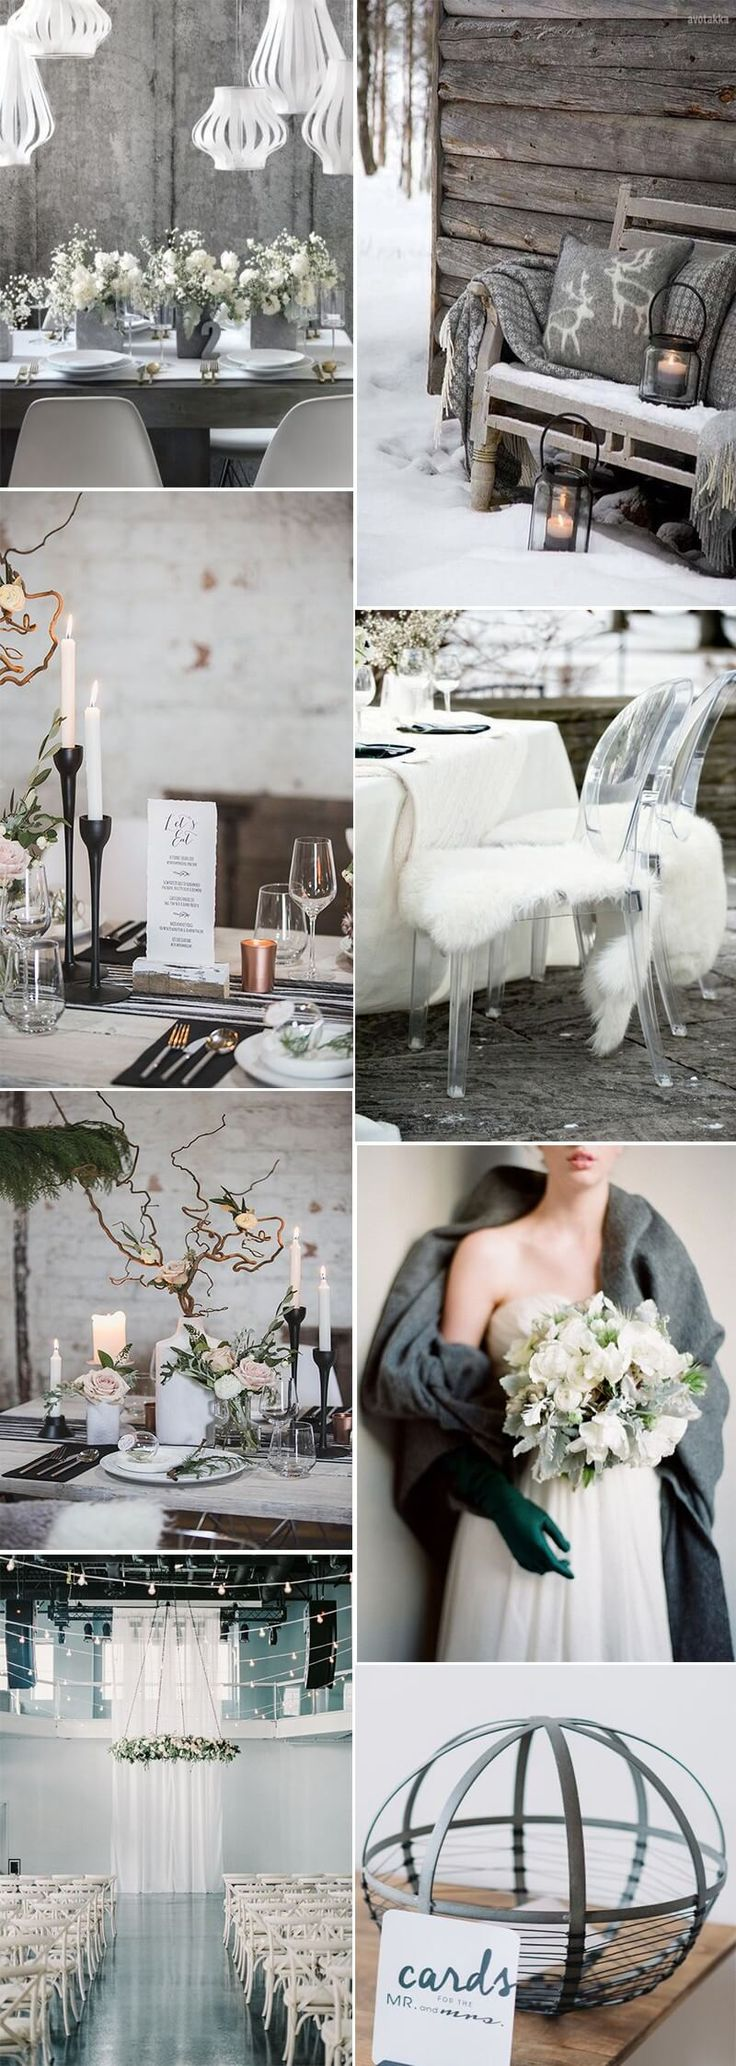 If you dream of a sparkling winter, or even Christmas wedding without the red and gold bells and whistles! Have a look at our choice of inspiration for a cool, classic Scandinavian look